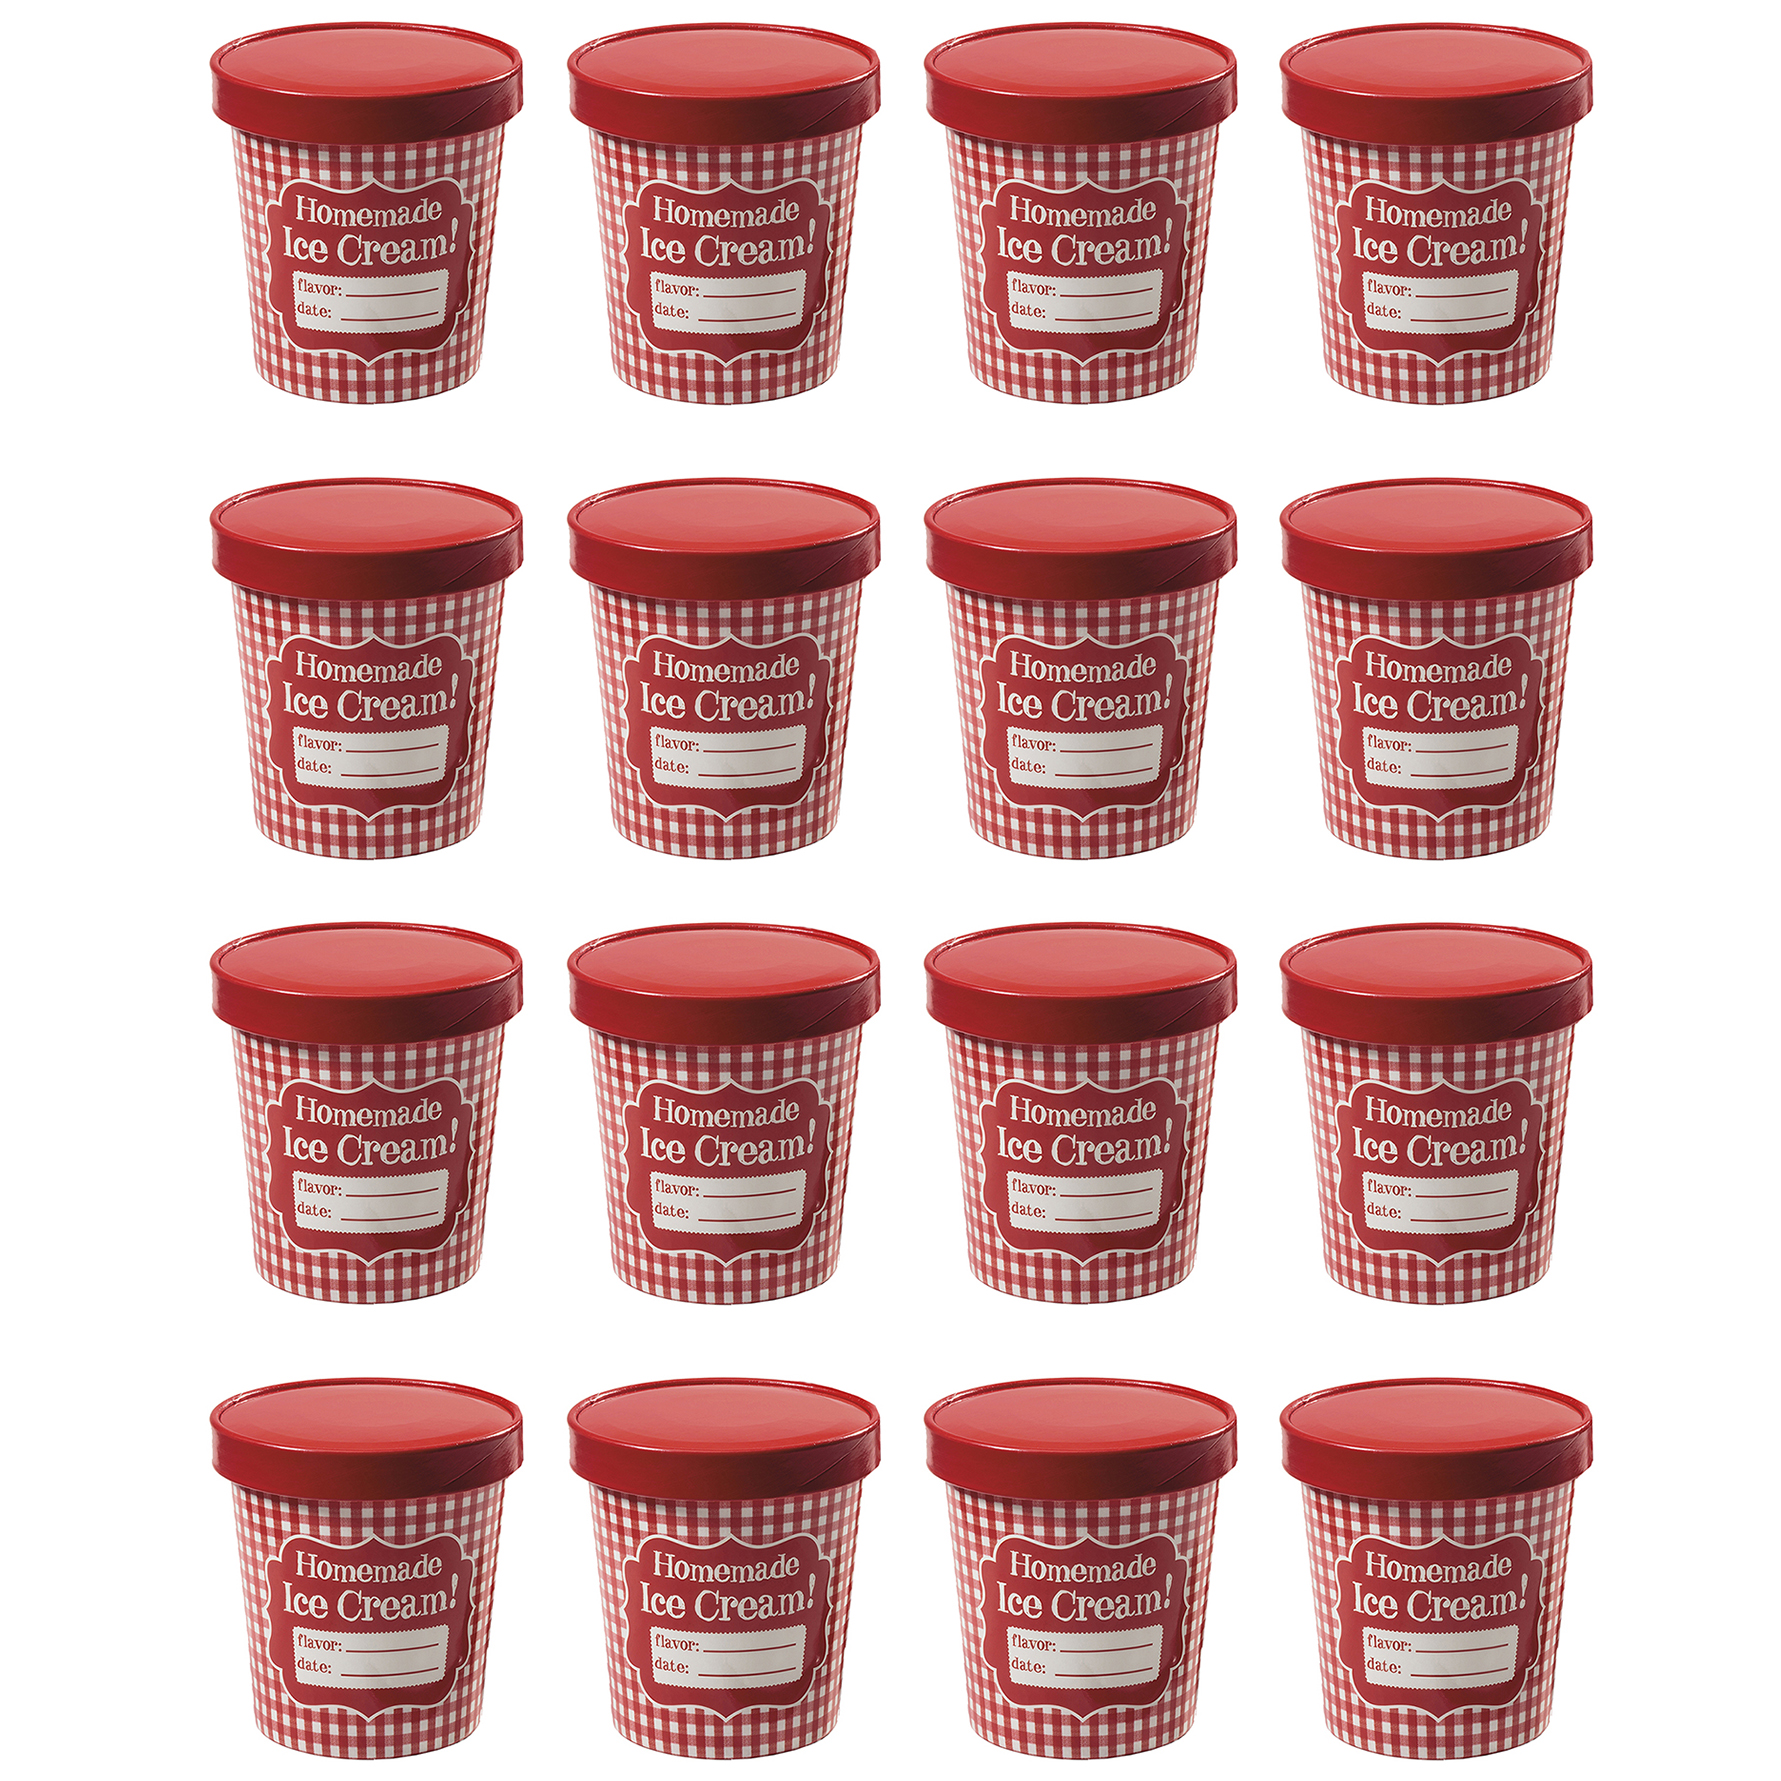 Hamilton Beach Homemade Ice Cream 1 Pint Storage Tubs and Lids, Red (16 Pack)